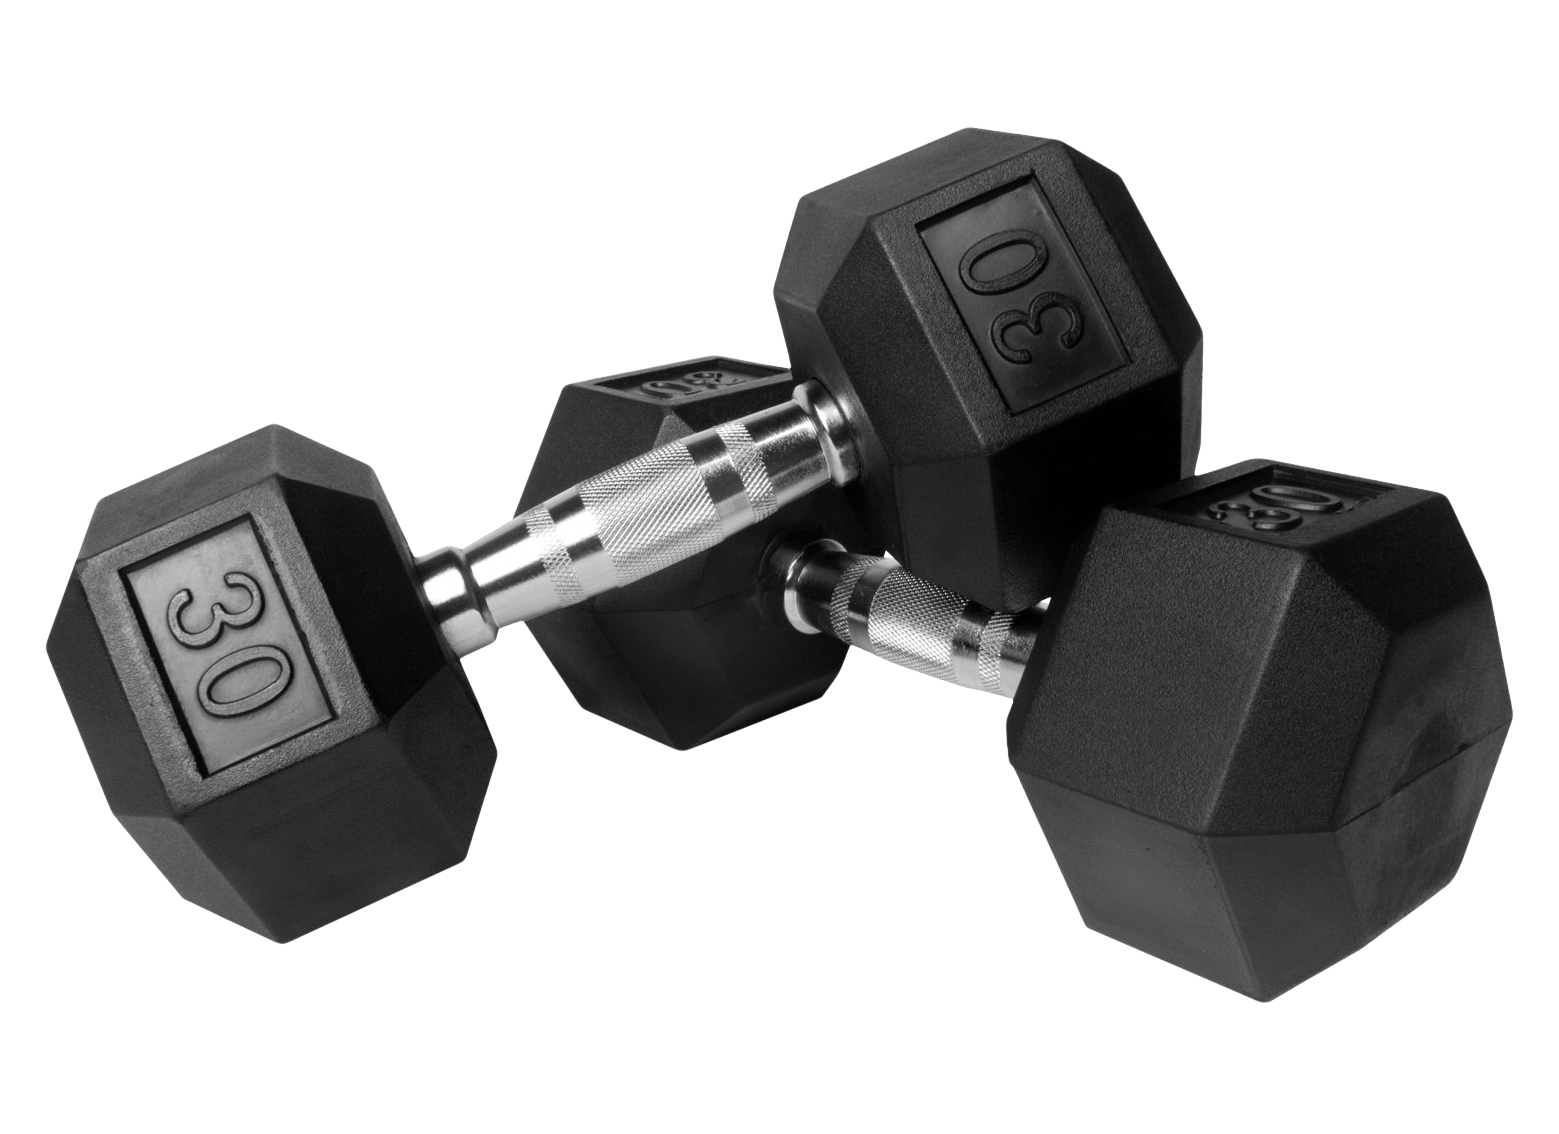 Dumbbell hantel png in. Dumbbells clipart icon